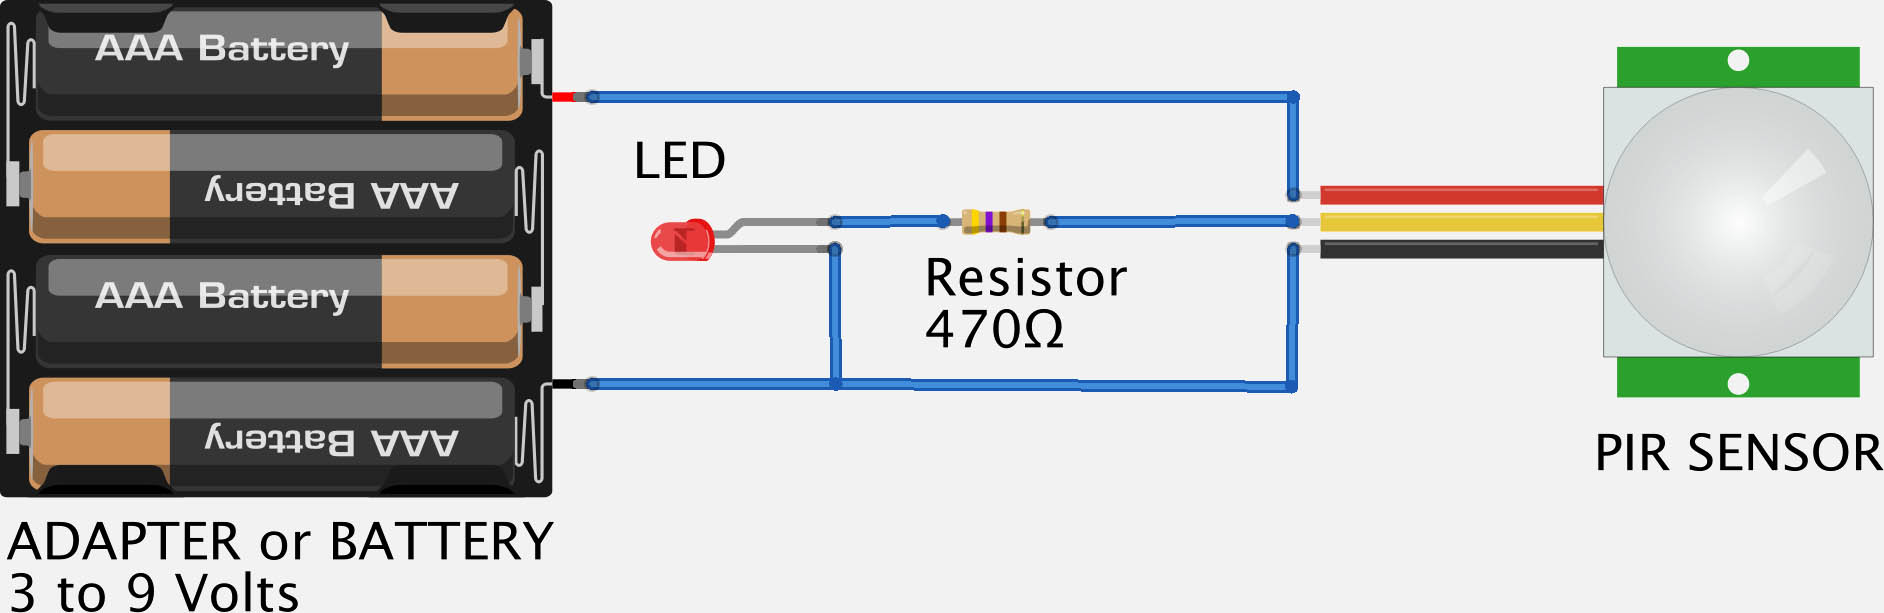 hight resolution of testing your pir with a battery led and a resistor